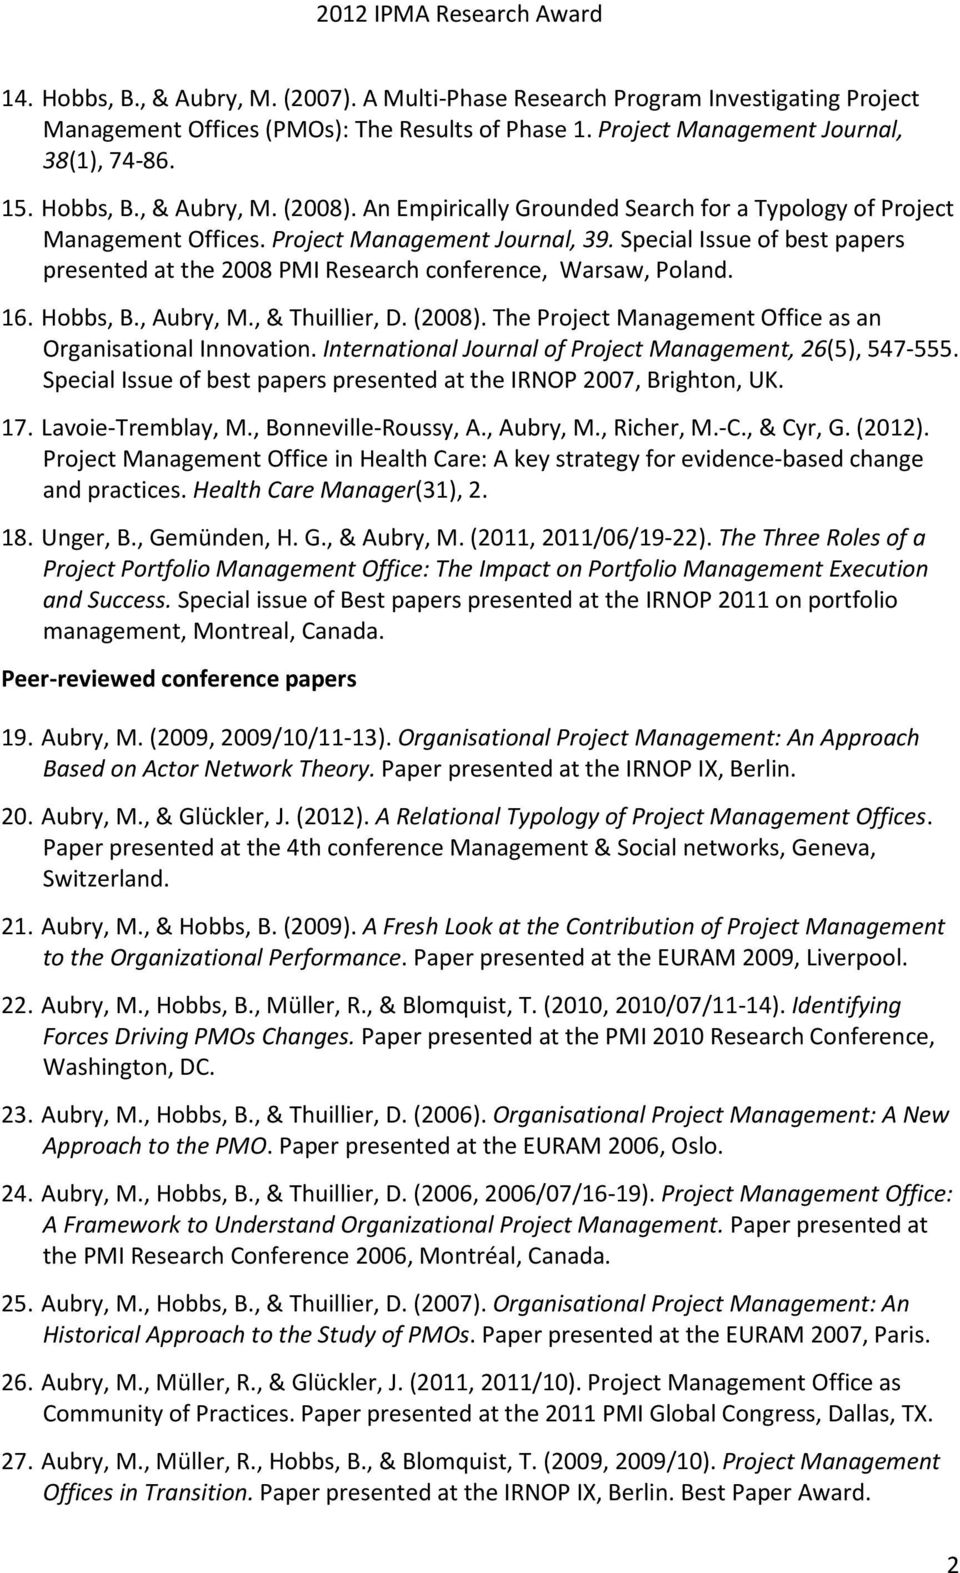 16. Hobbs, B., Aubry, M., & Thuillier, D. (2008). The Project Management Office as an Organisational Innovation. International Journal of Project Management, 26(5), 547-555.